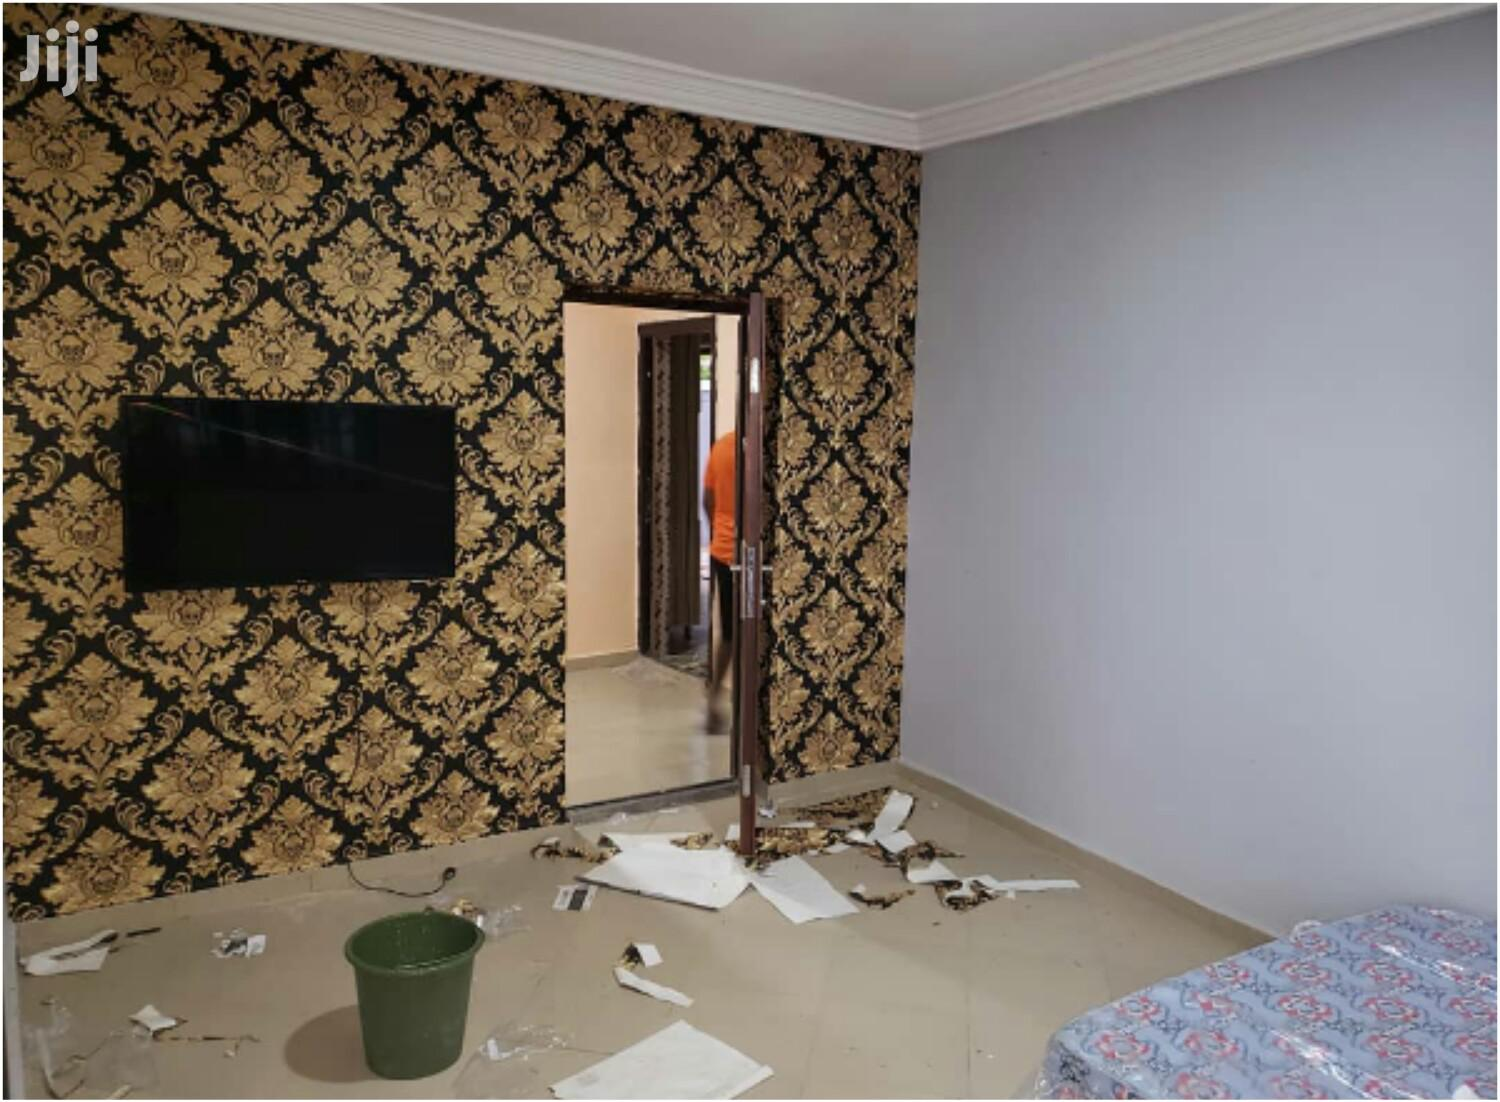 Wallpapers | Home Accessories for sale in Gaduwa, Abuja (FCT) State, Nigeria